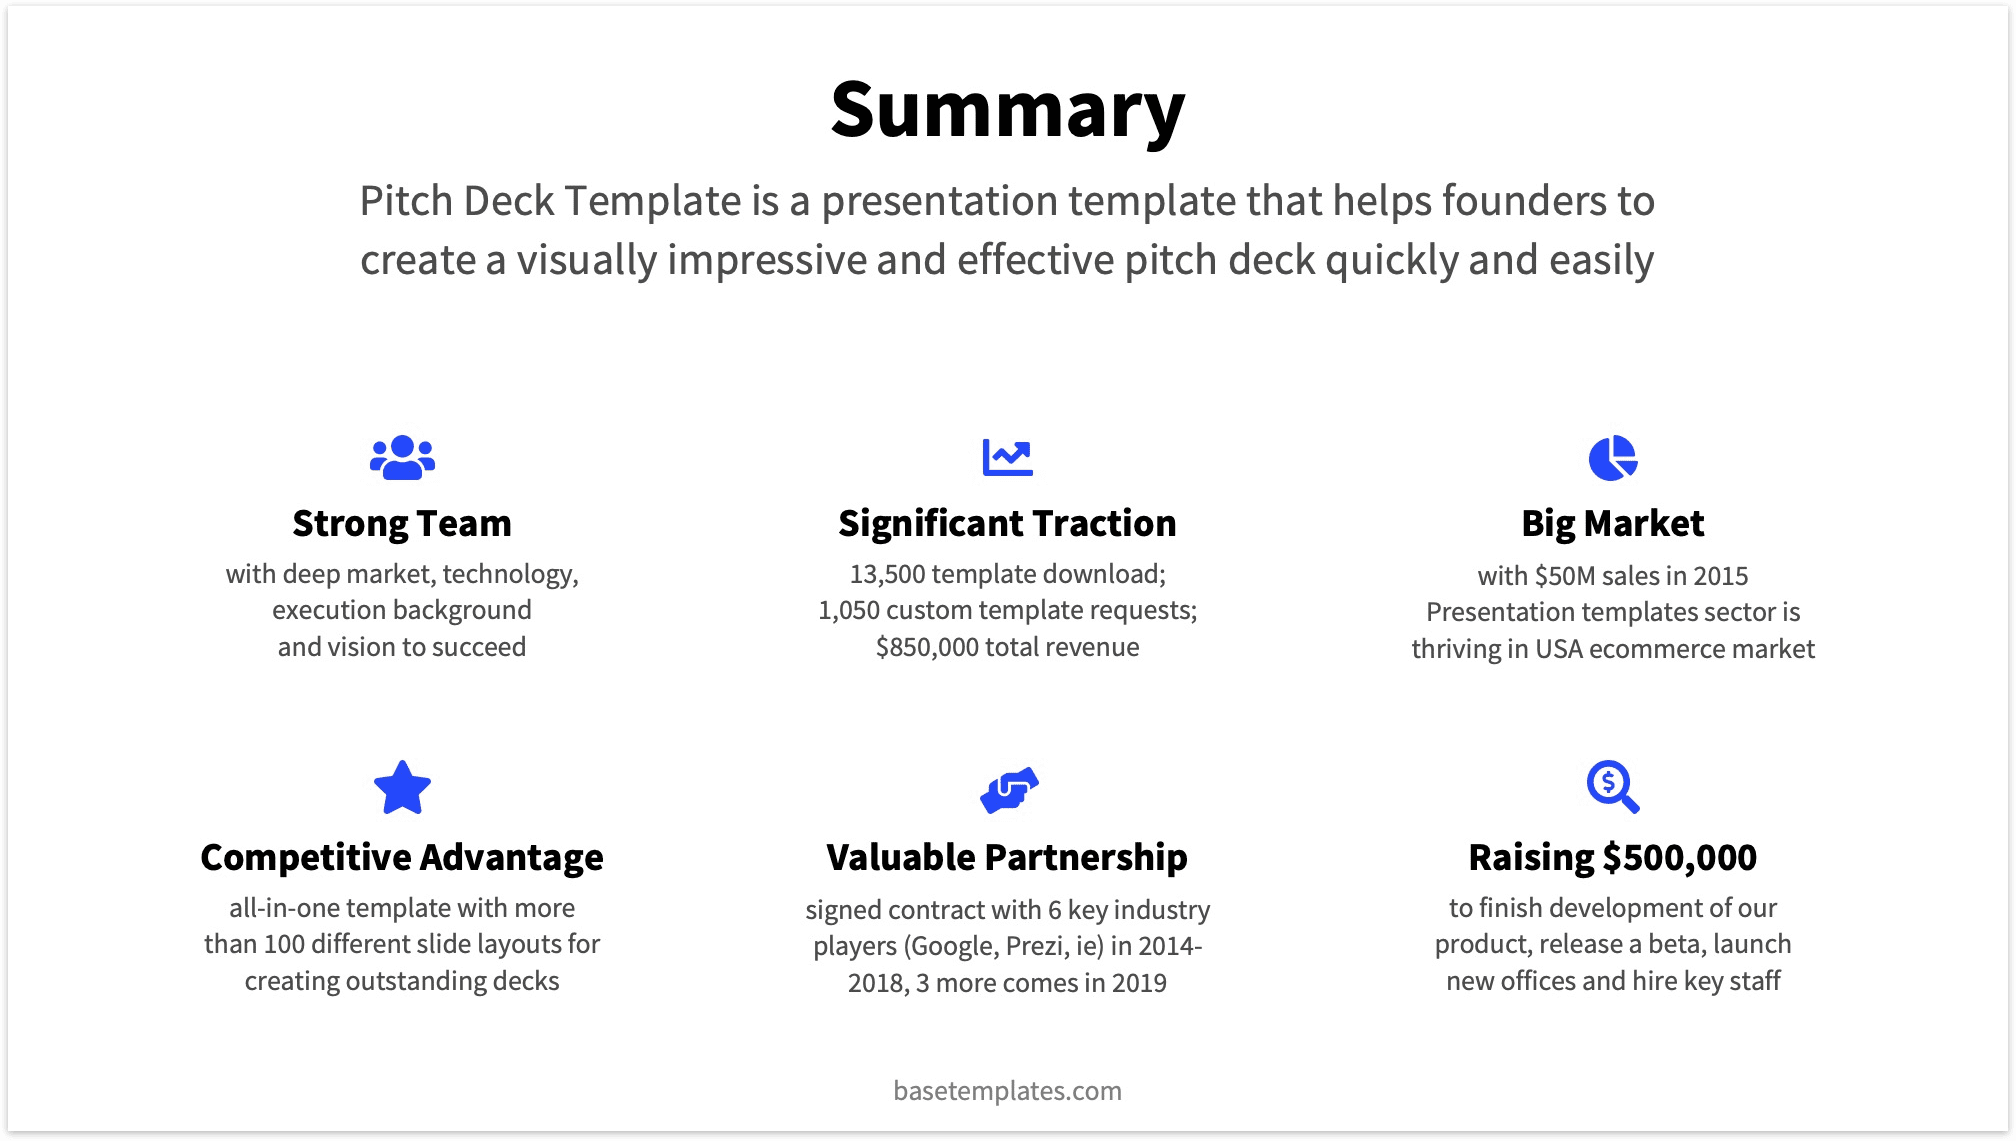 pitch deck template viewer  summary